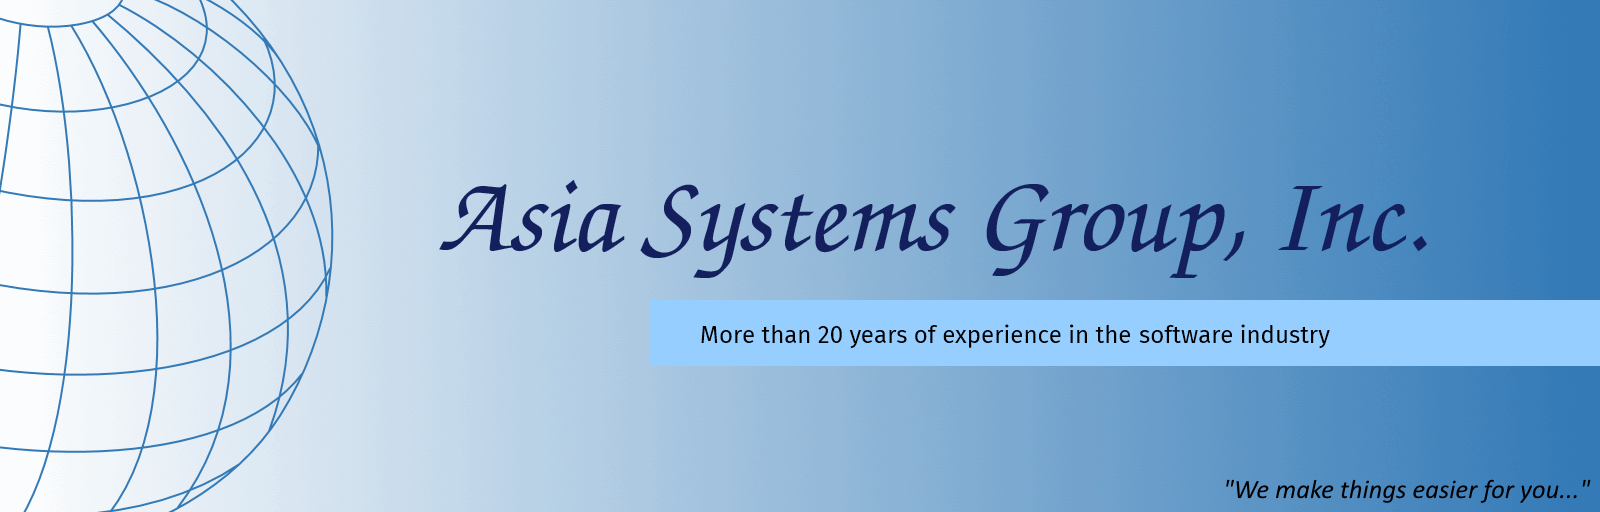 Asia Systems Group, Inc.